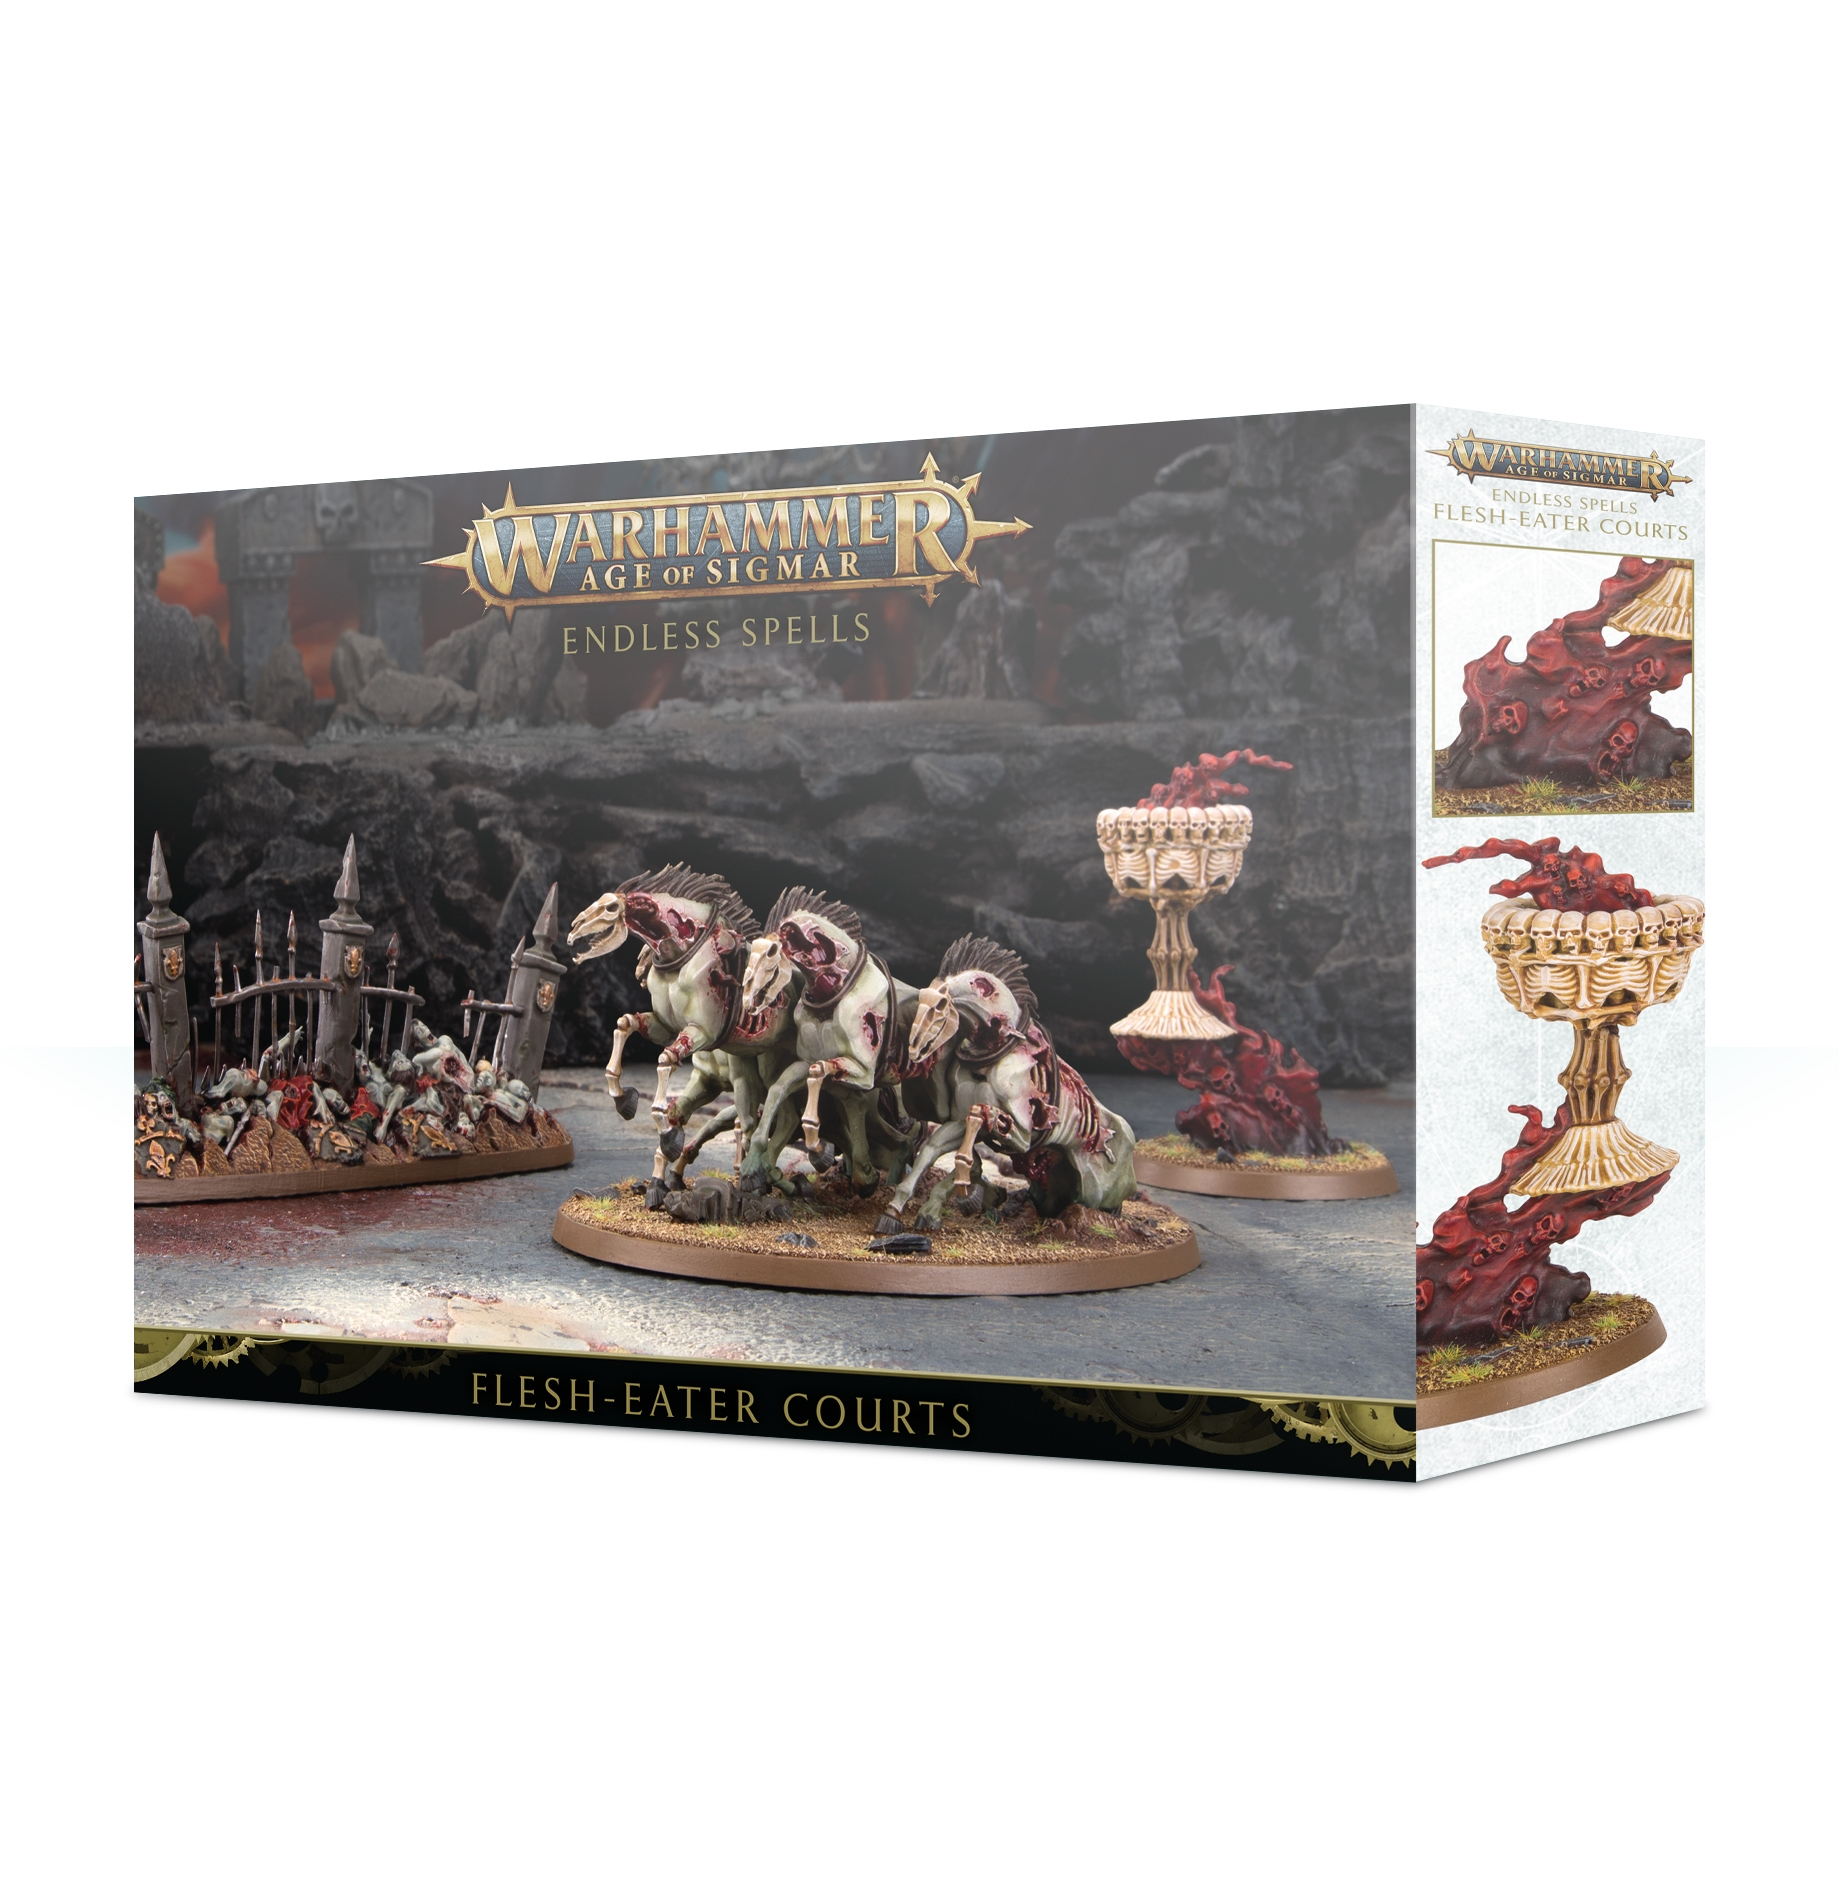 Warhammer Age of Sigmar: Flesh-Eater Courts: Endless Spells